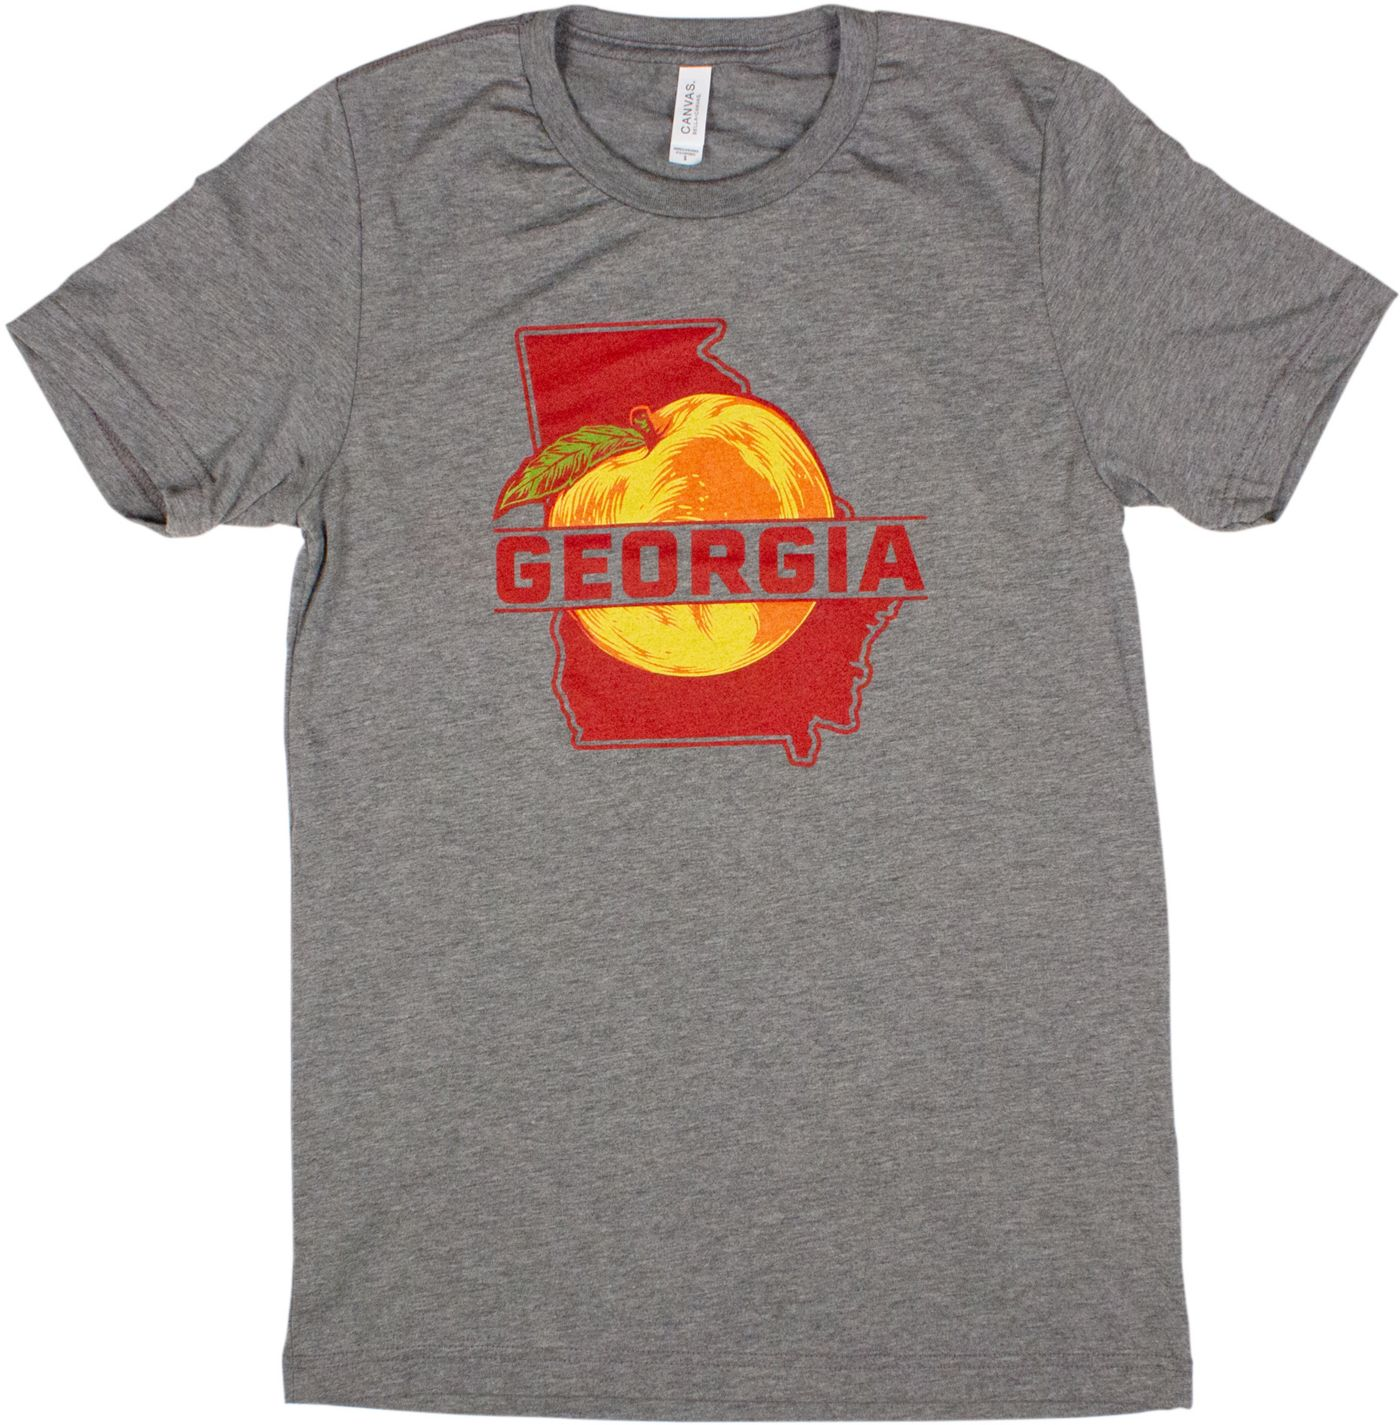 Home State Apparel Men's Georgia Peach Short Sleeve T-Shirt